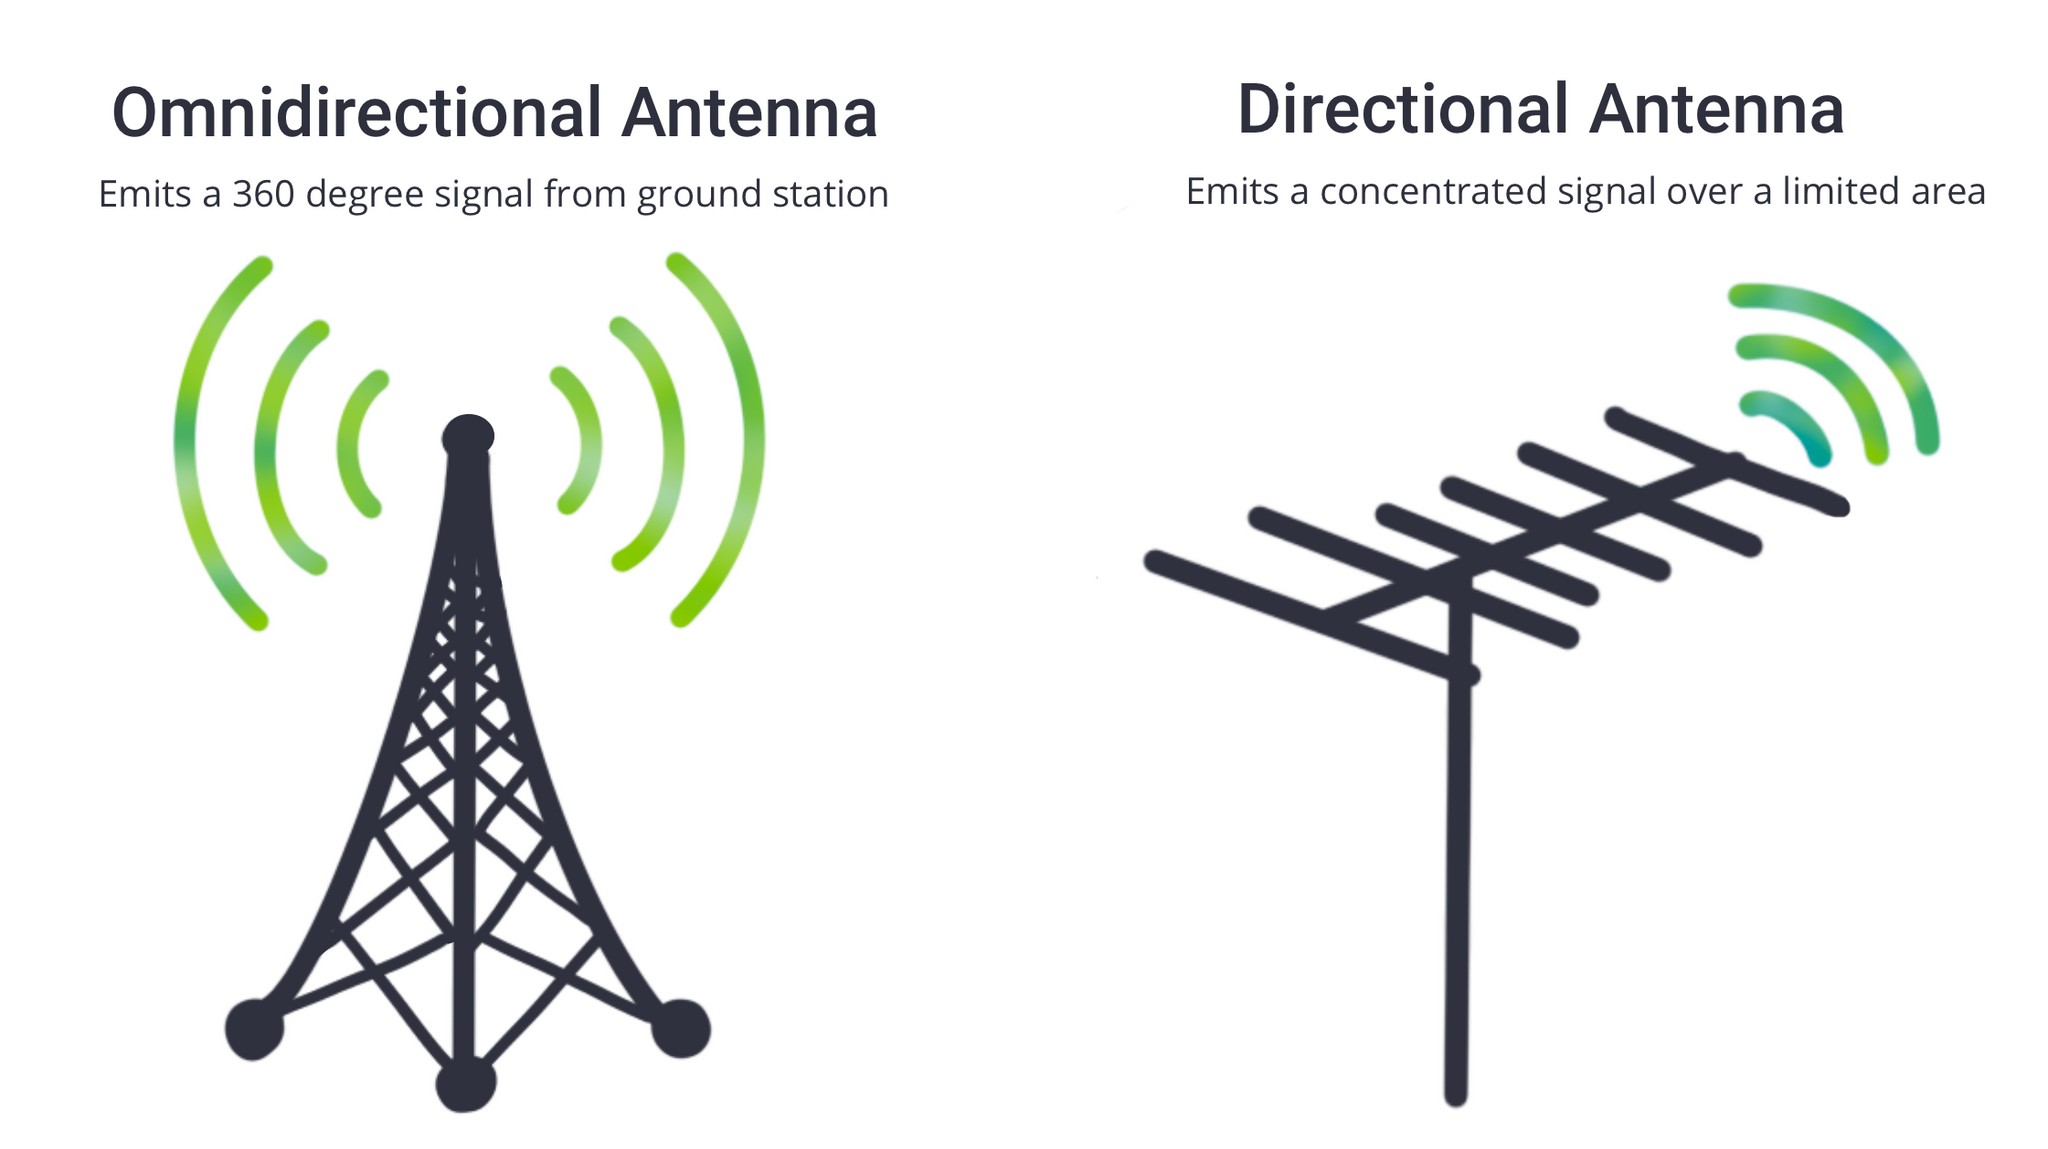 Omnidirectional antenna emits a 360 degree signal from the ground station. Directional antenna emits a concentrated signal over a limited area.